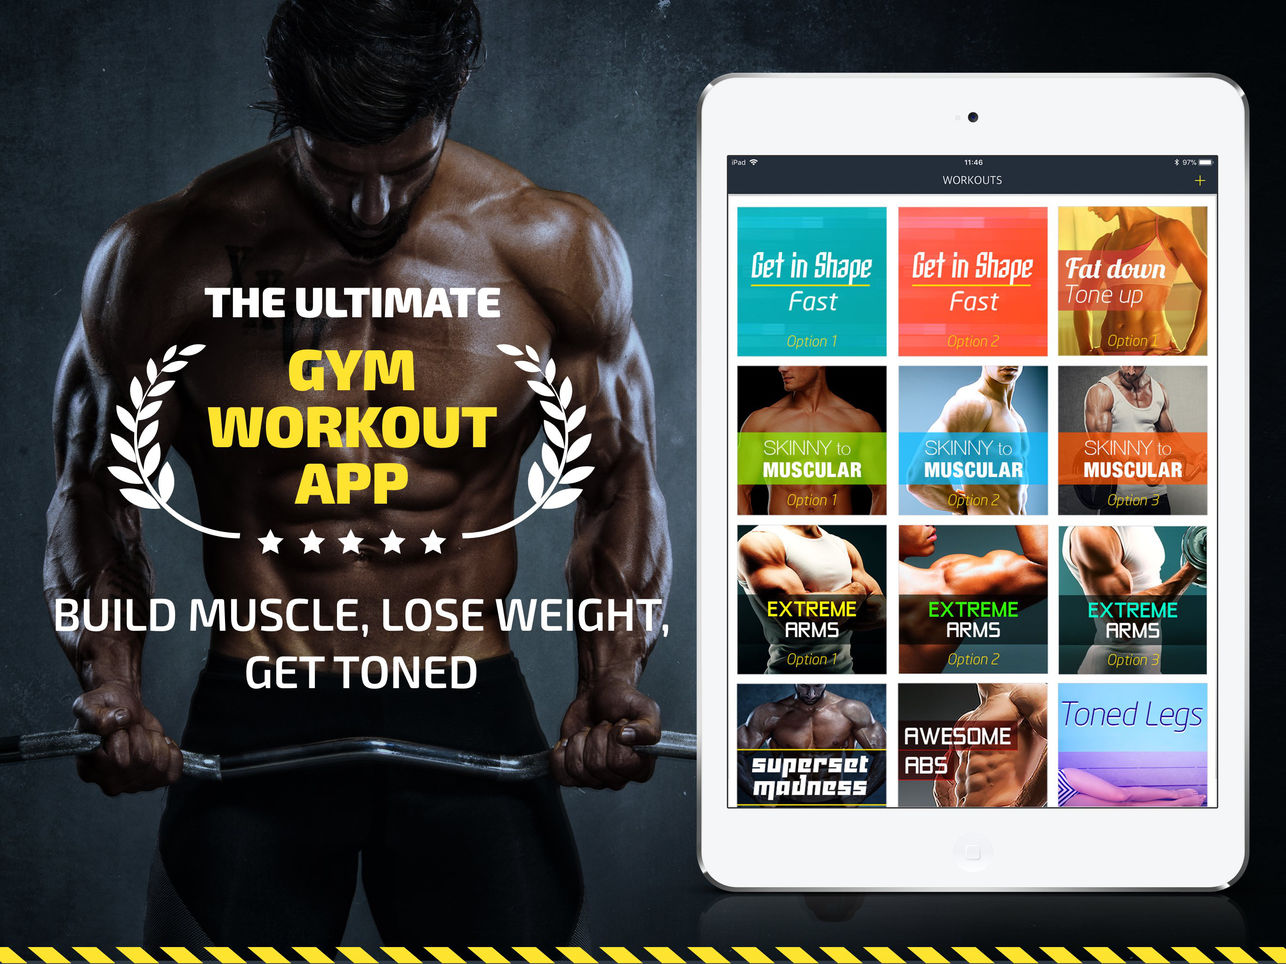 Fitness22 Workout: Gym Tracker and Gym Workout Planner App - Weightlifting Plans App - The Ultimate Gym Workout App - Build Muscle, Lose Weight, Get Toned.